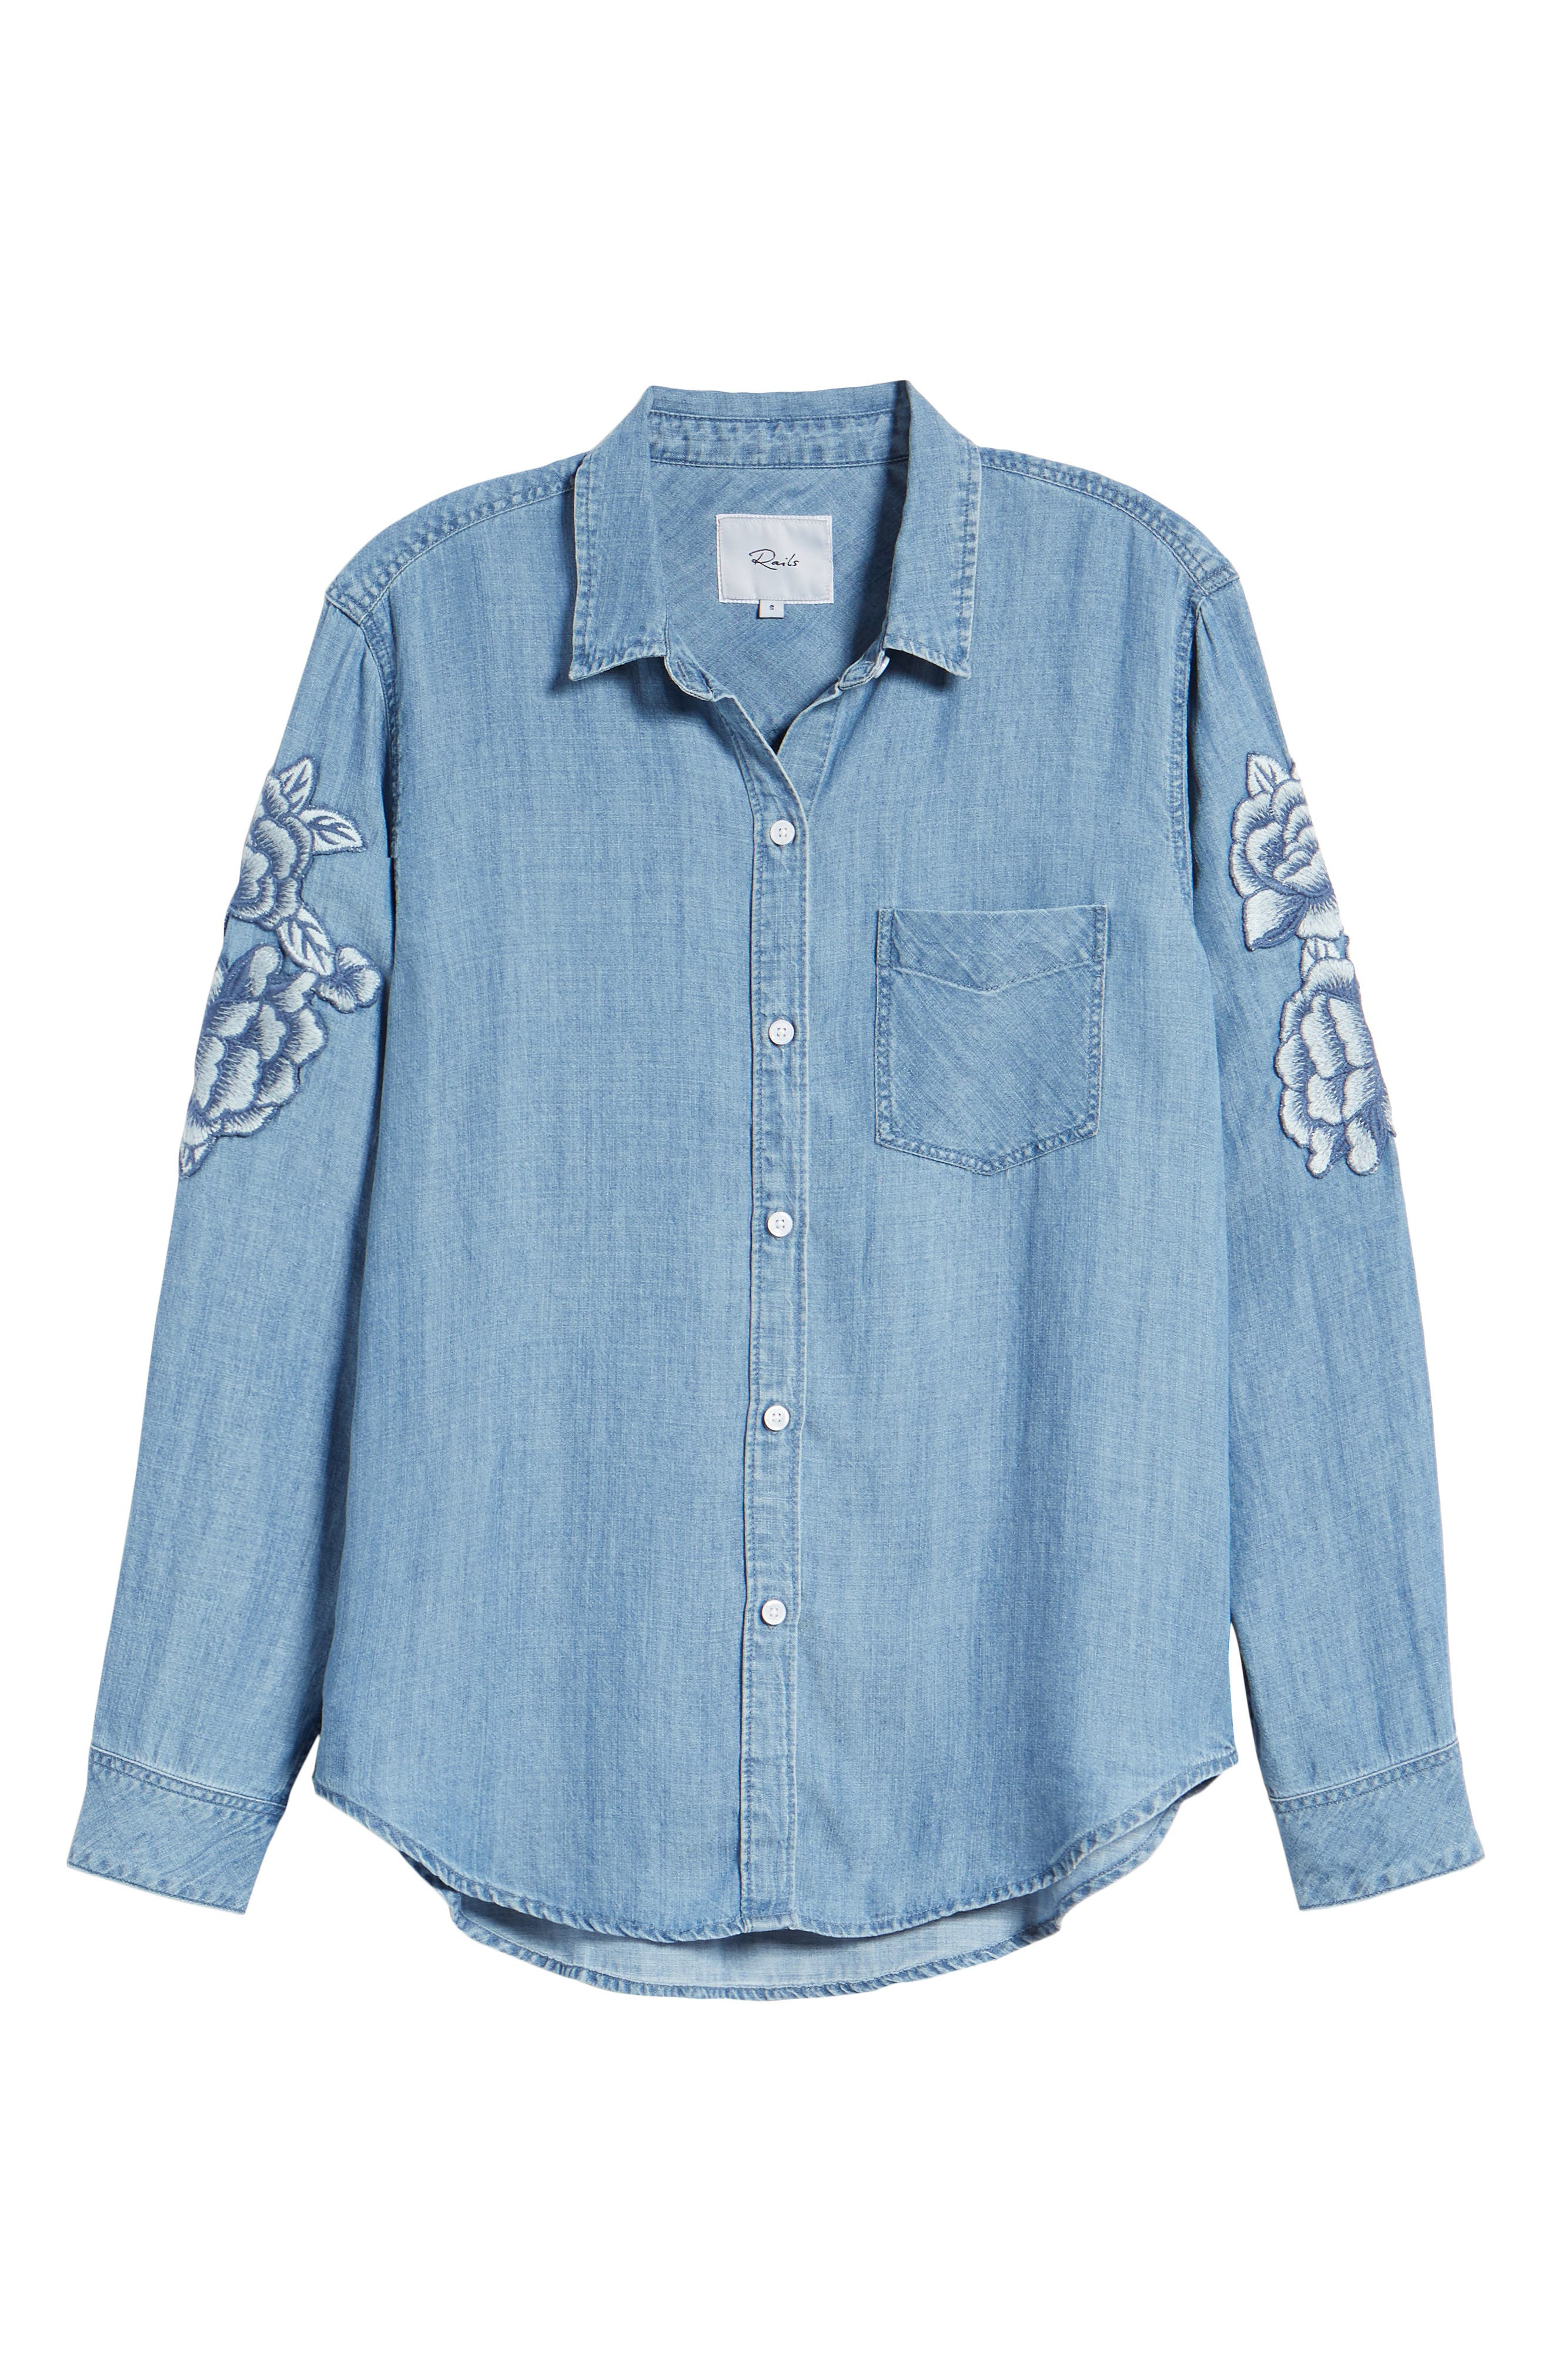 RAILS,                             Ingrid Embroidered Chambray Shirt,                             Alternate thumbnail 7, color,                             493